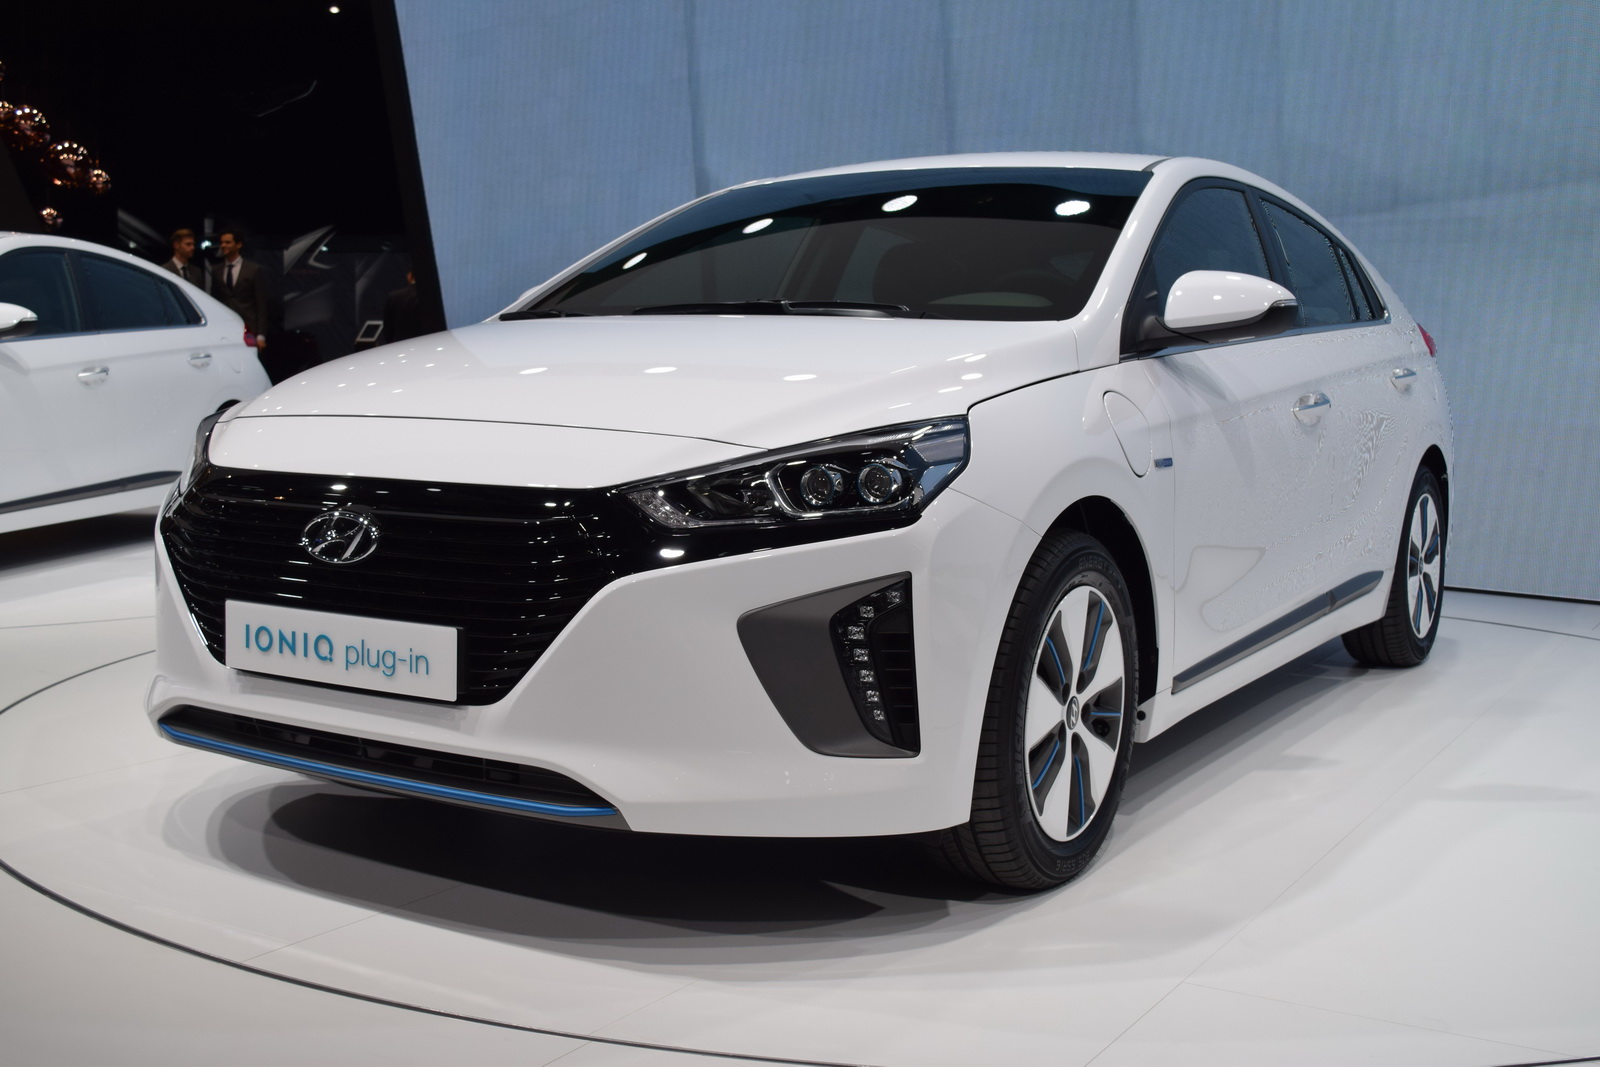 hyundai showcases all three ioniq models in geneva carscoops. Black Bedroom Furniture Sets. Home Design Ideas